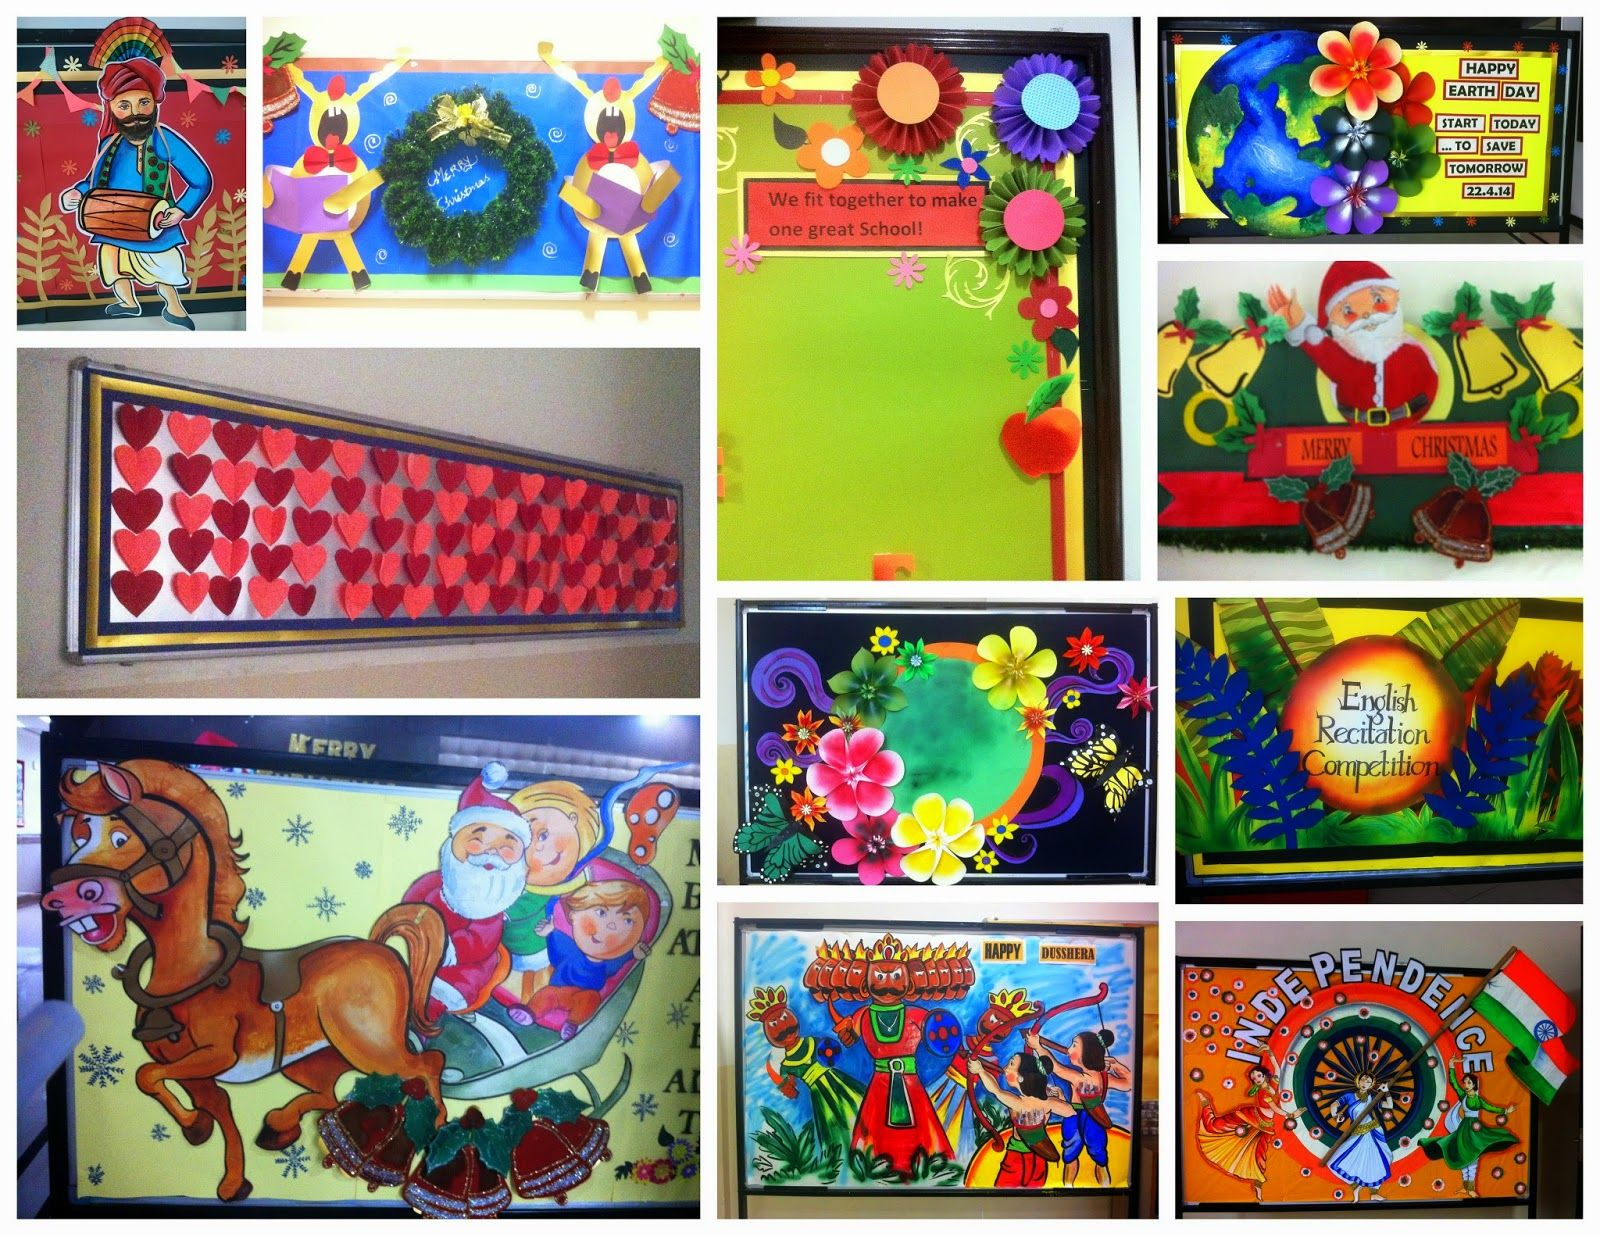 Art craft ideas and bulletin boards for elementary schools collection of bulletin boards